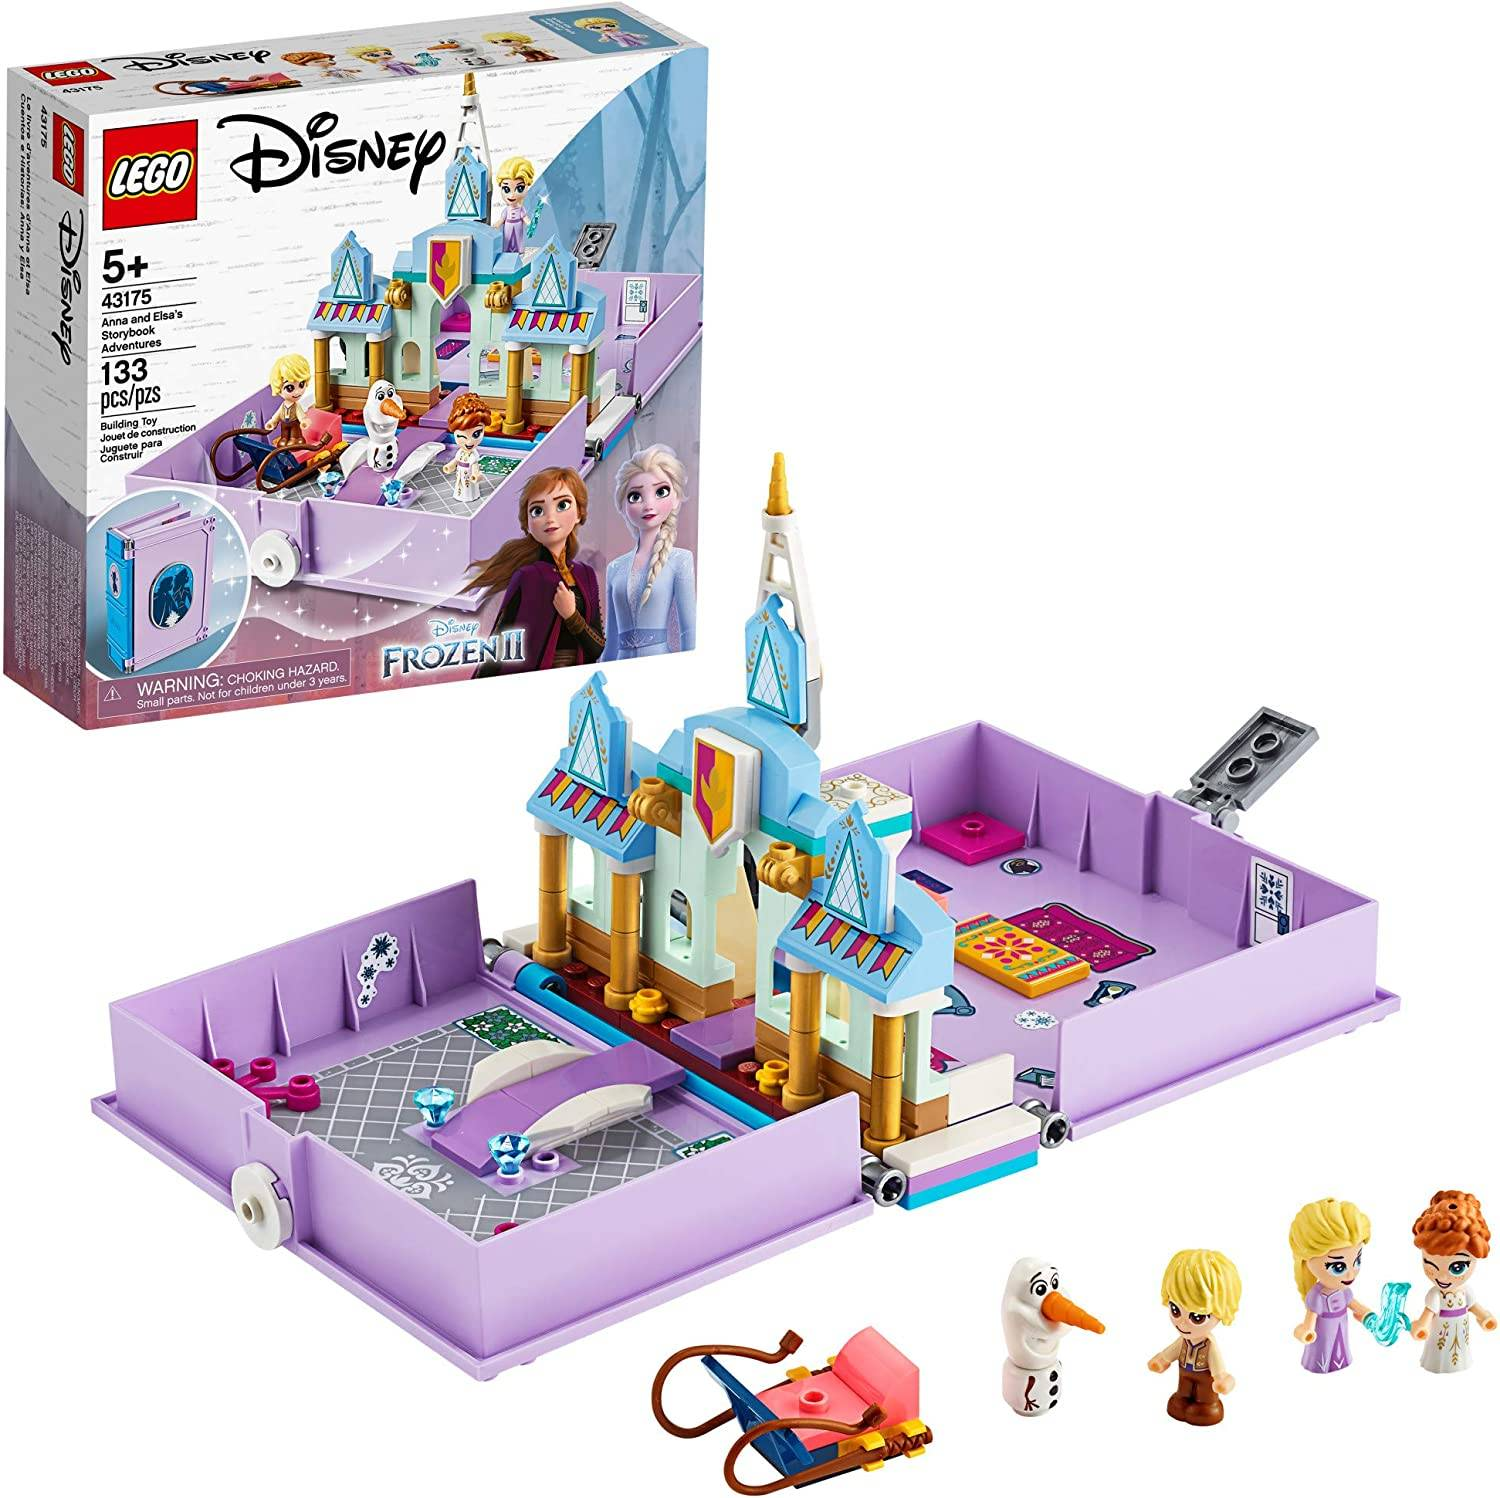 The Disney Anna and Elsa's Storybook Adventures set